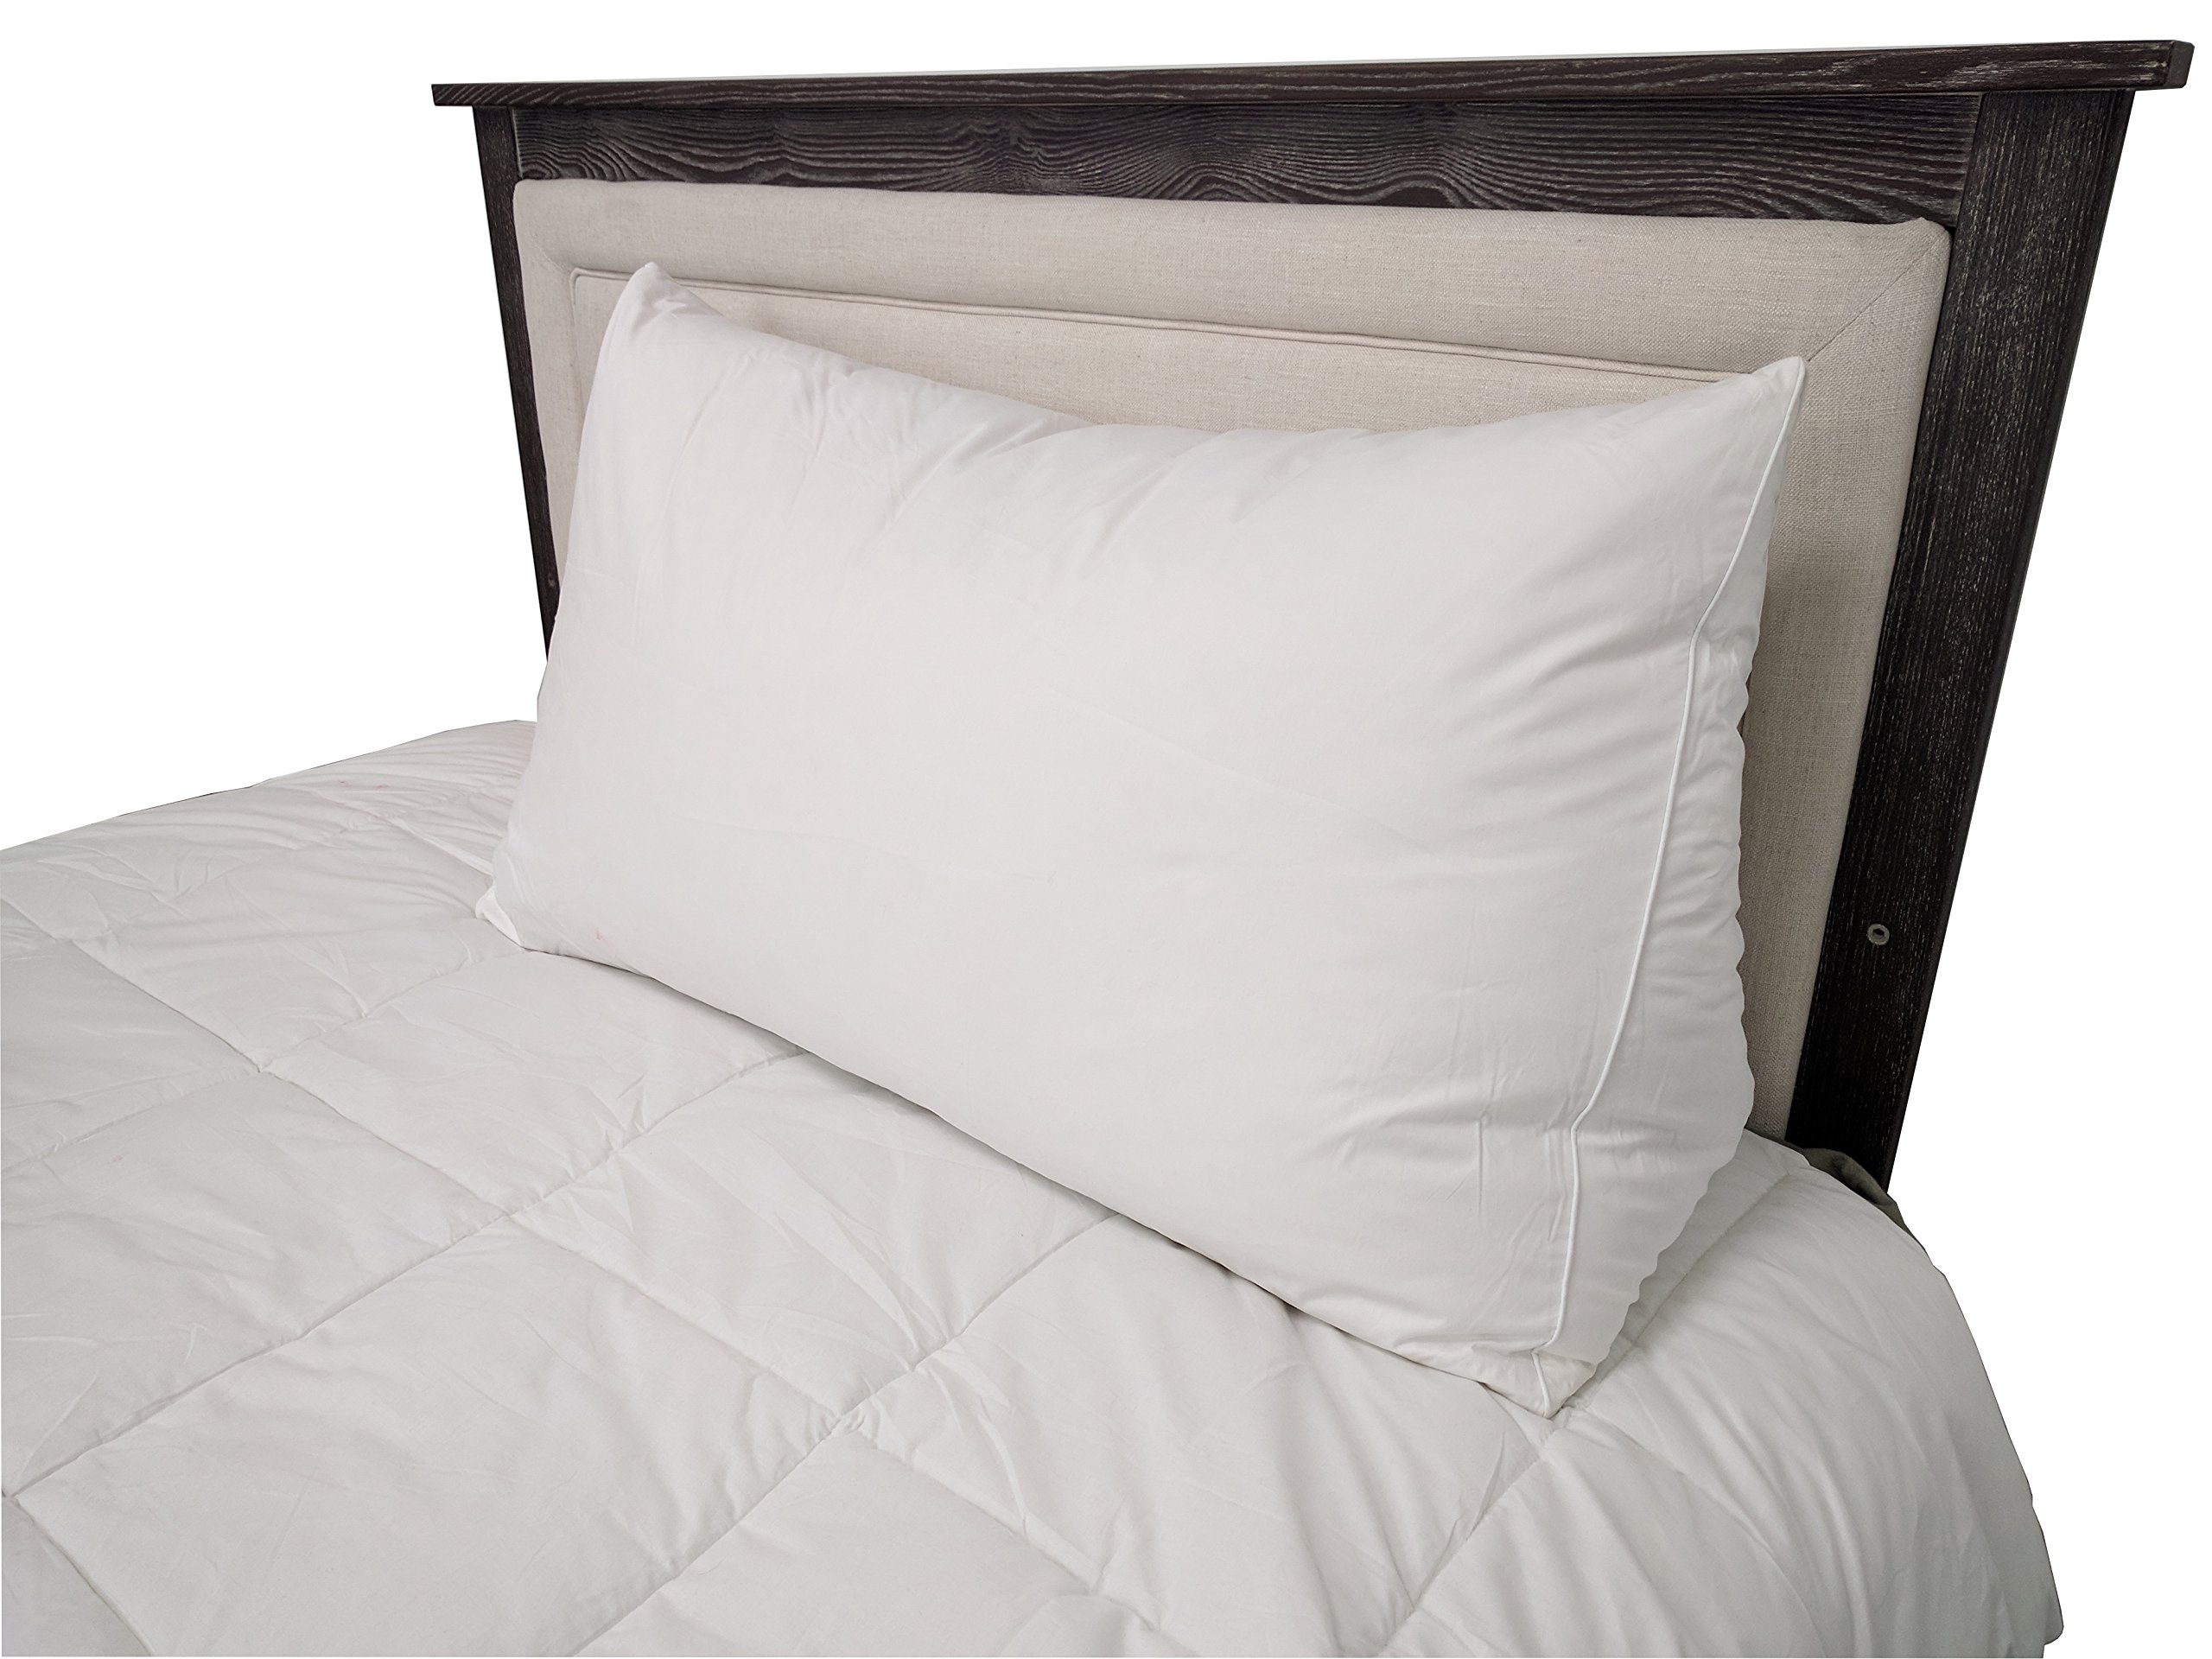 Reading Pillow Bed Cheap Wedge Reading Pillow Find Wedge Reading Pillow Deals On